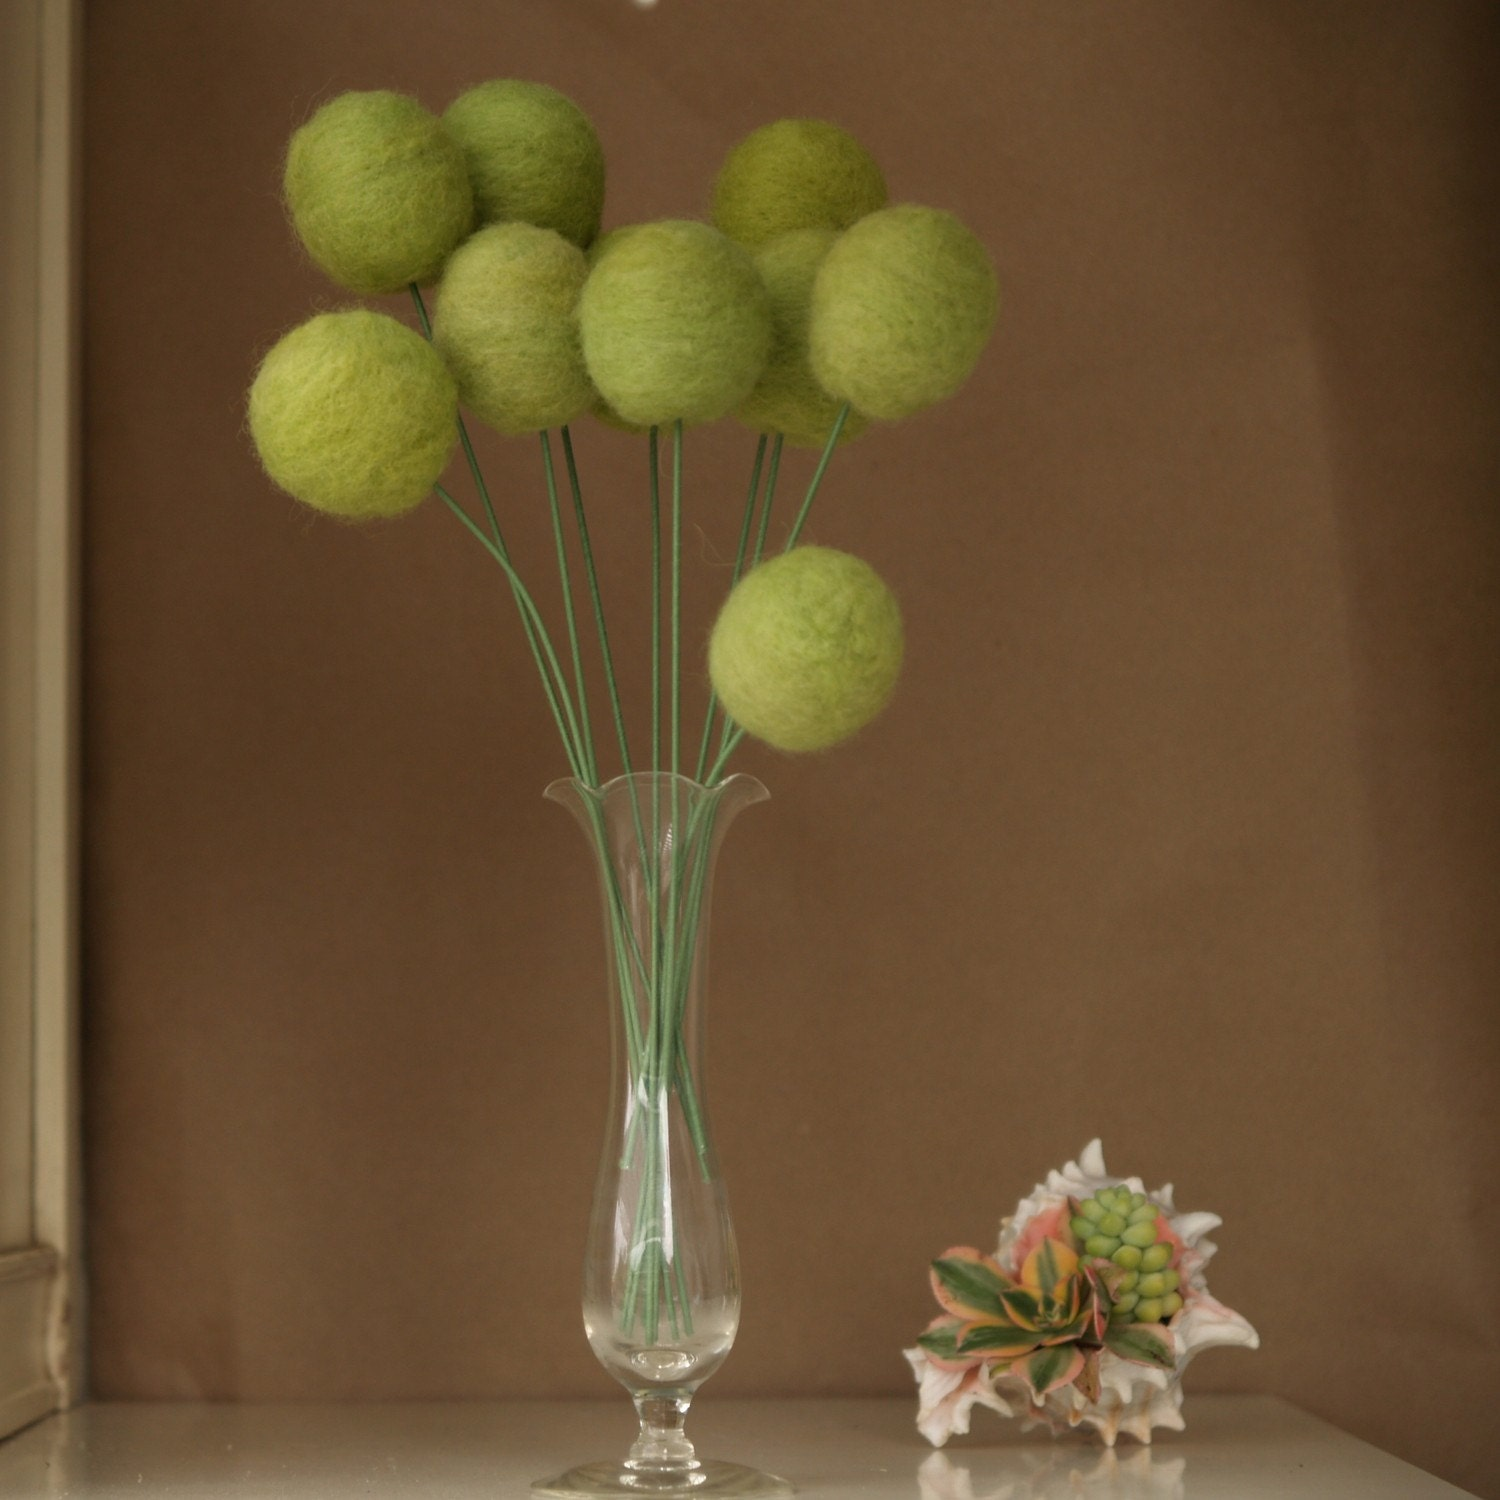 10 Large Mossy Green Craspedia Stems - Spring Wool Blossoms eco friendly and ever lasting nature